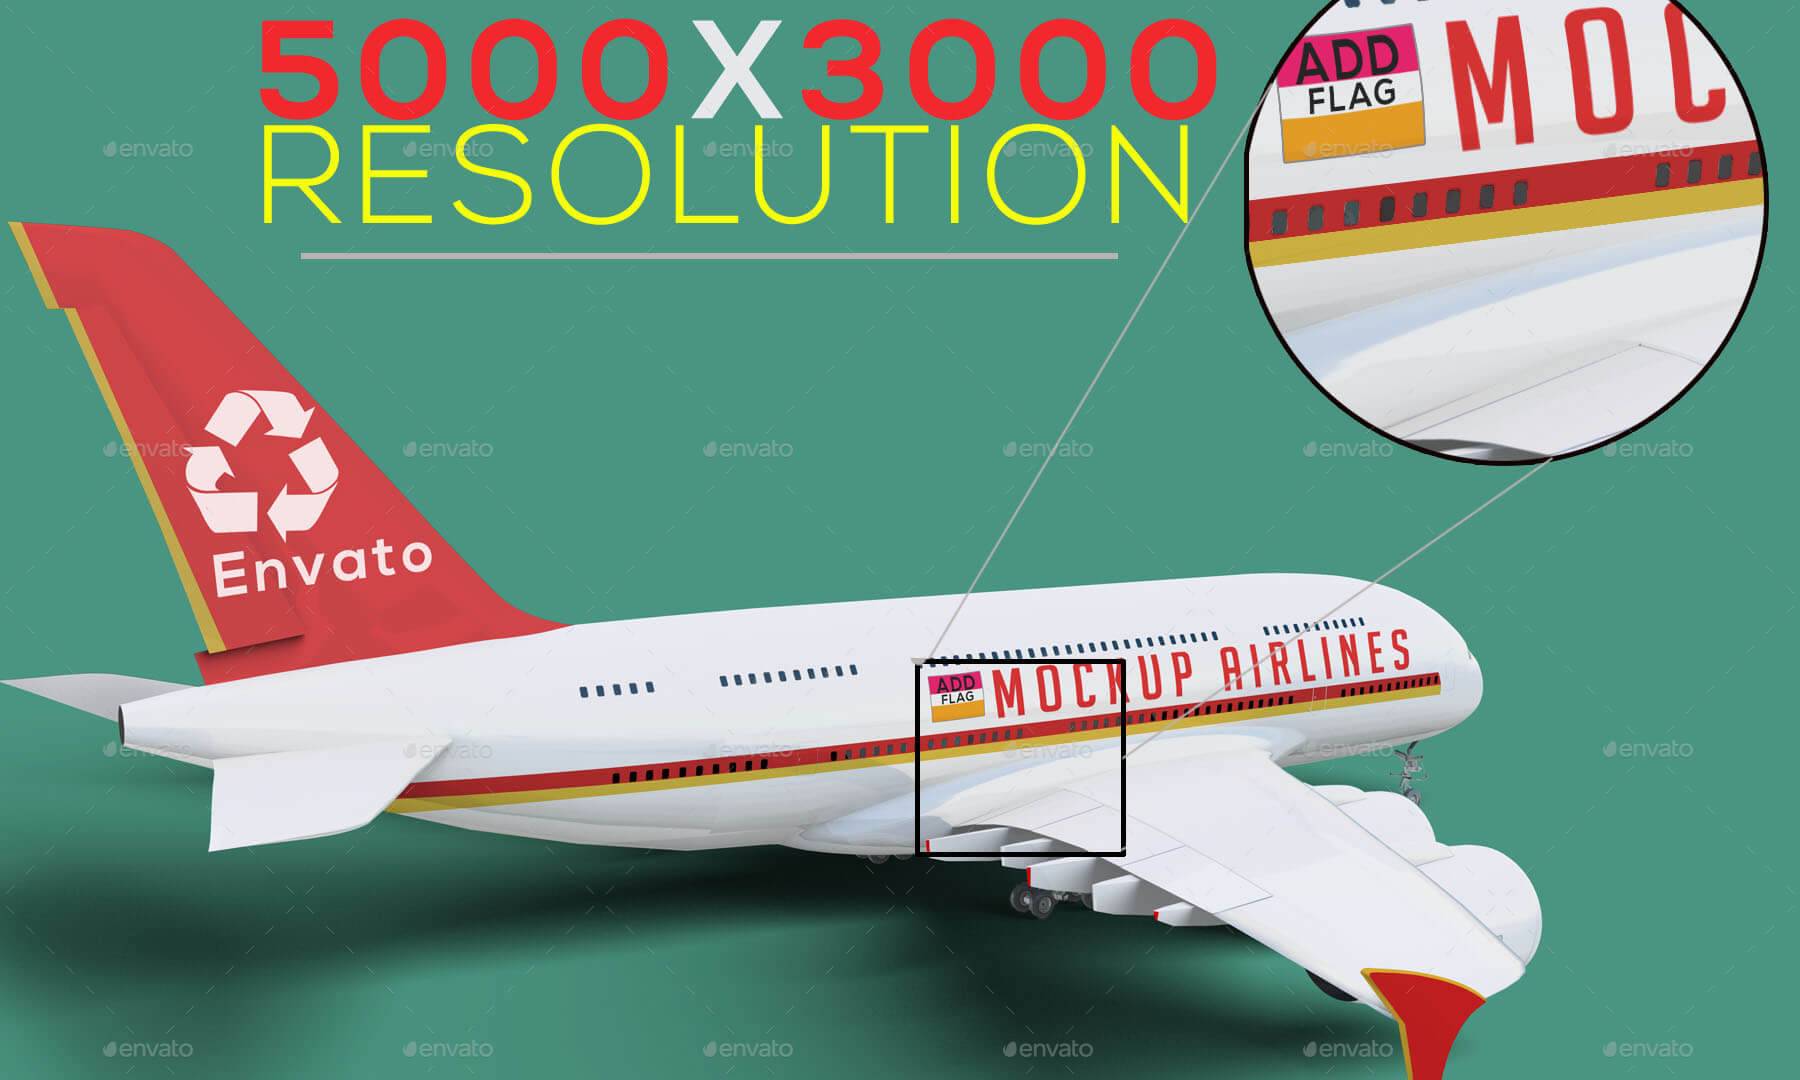 Airplane Advertising Mockup 02 - A380